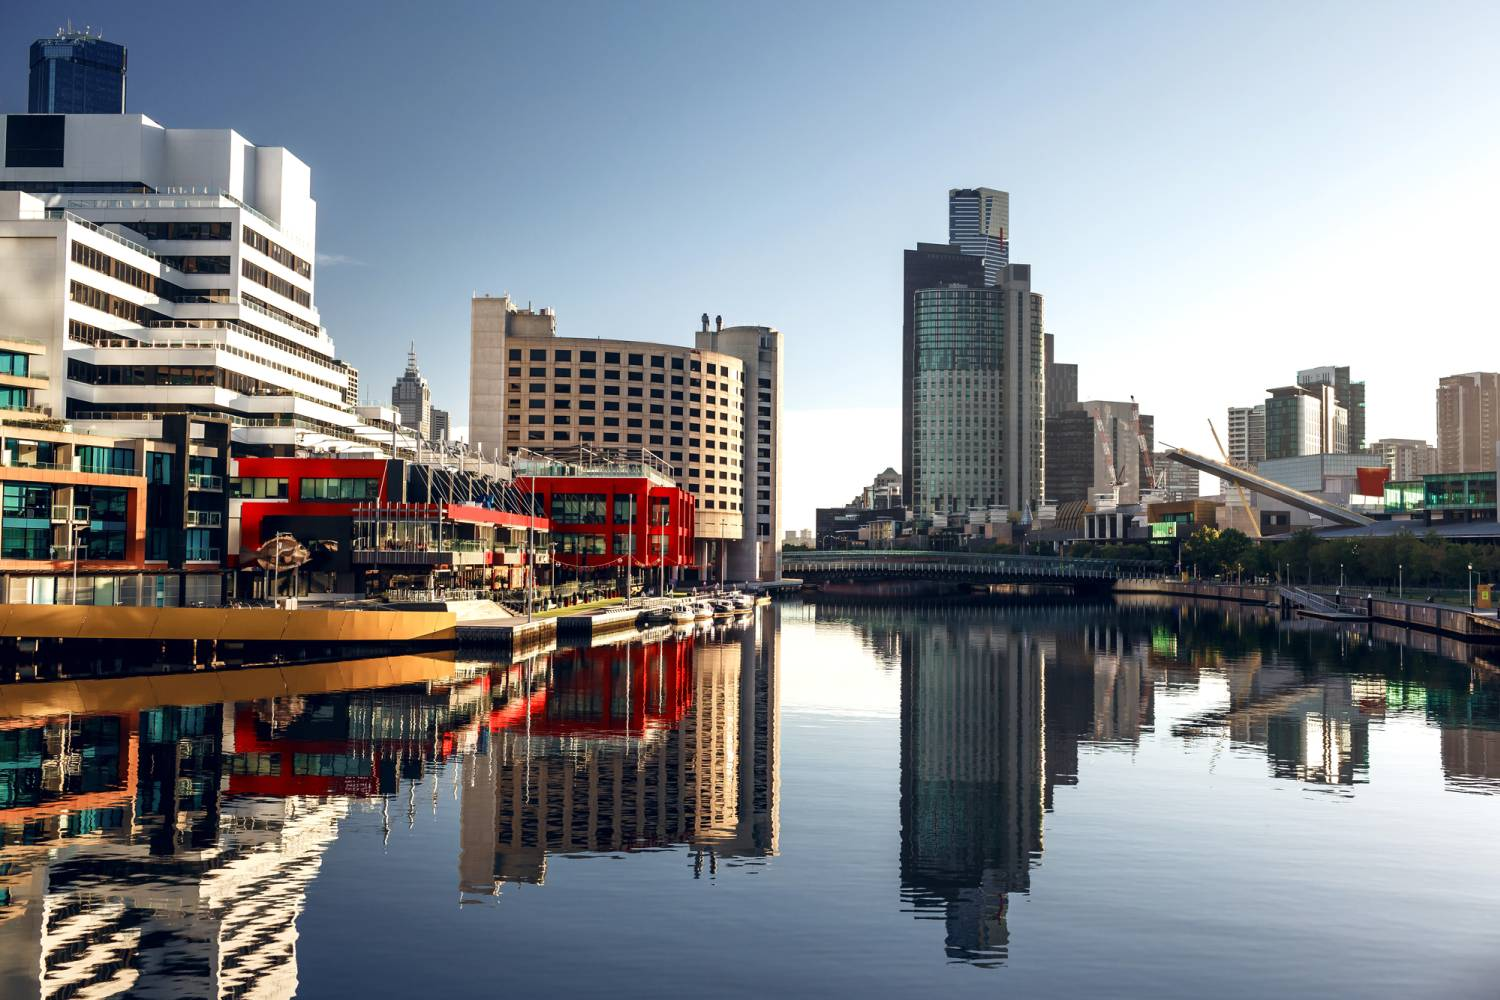 melbourne buildings market difference between Australian and world